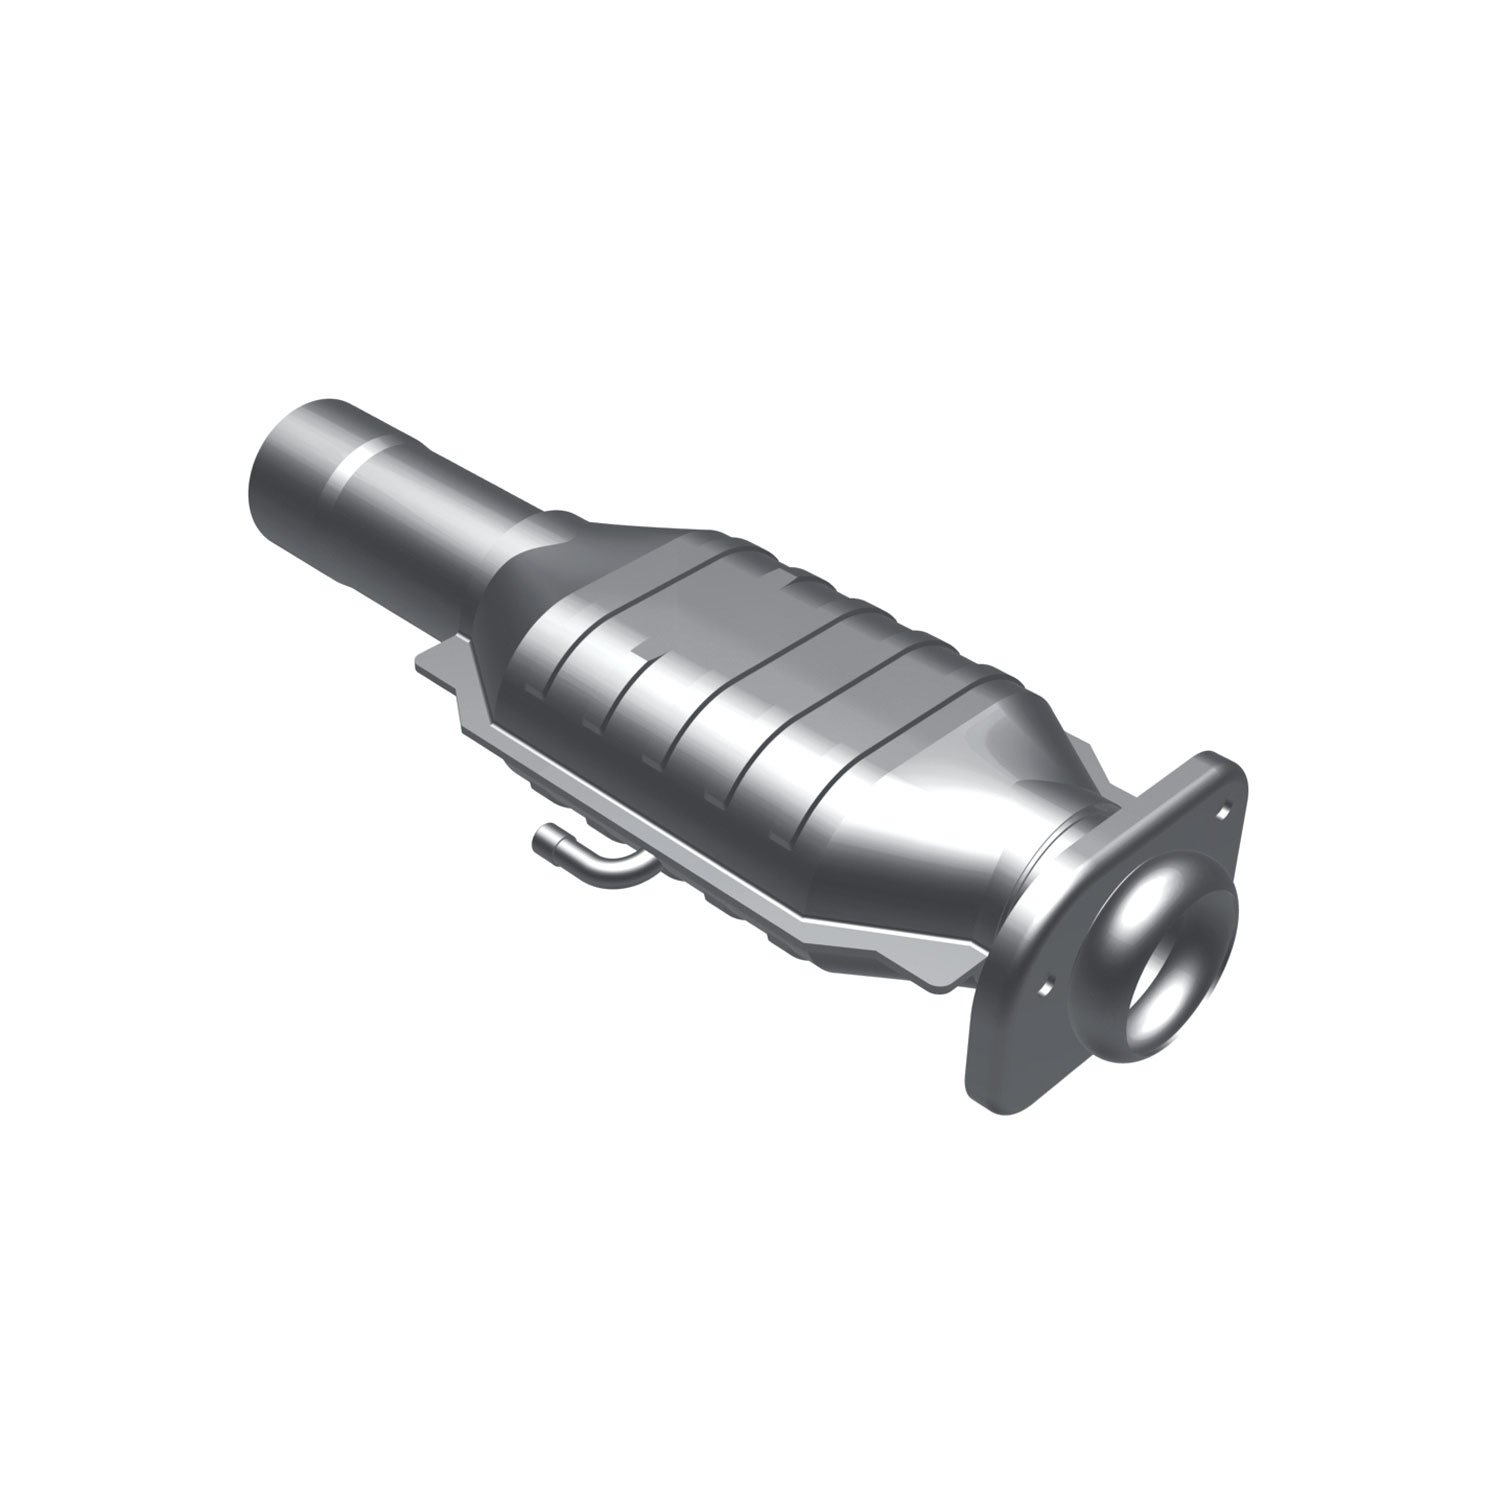 Magnaflow 93941 Direct-Fit Catalytic Converter